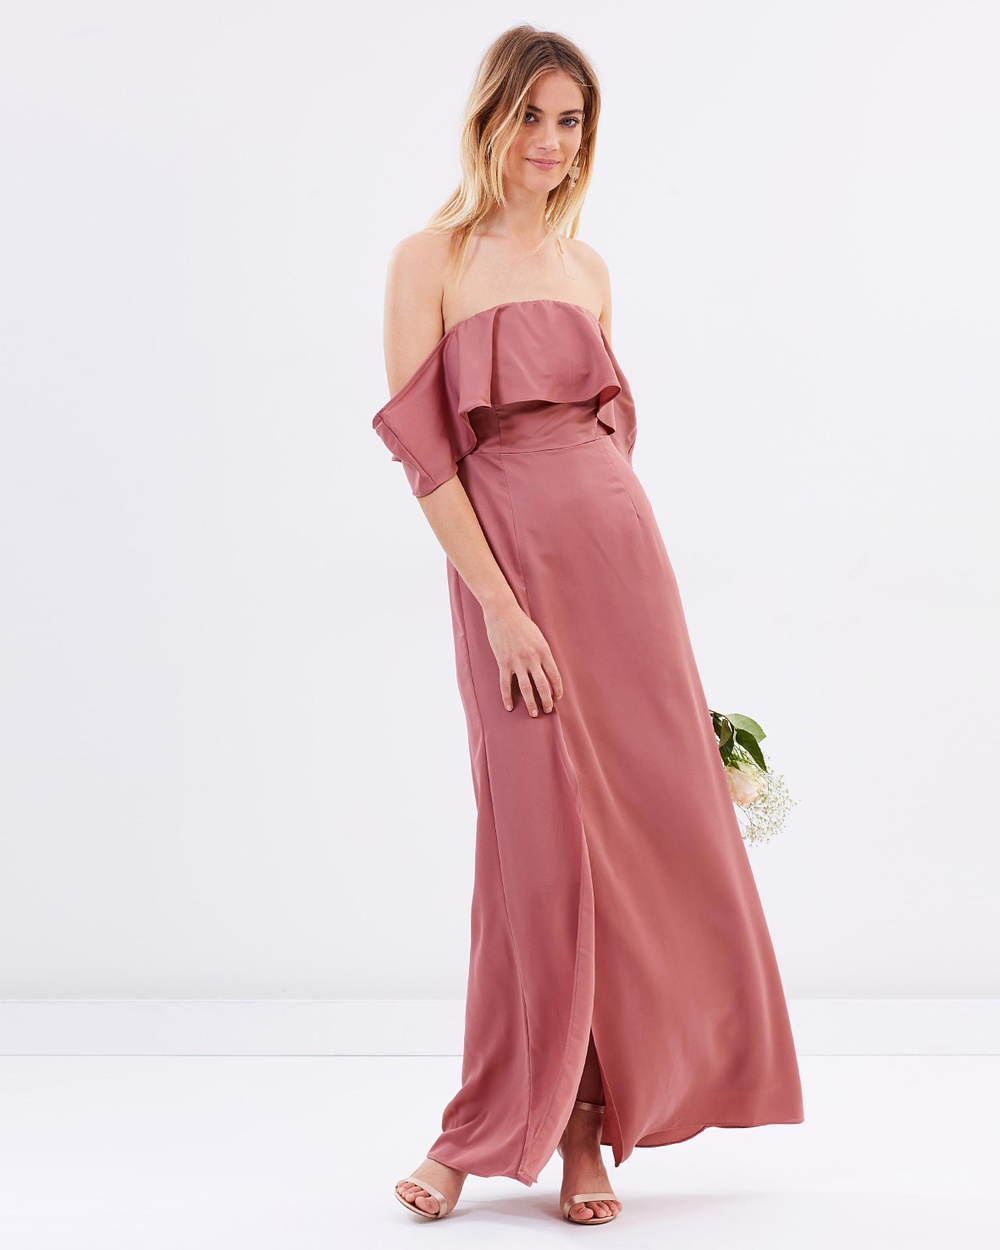 Atmos & Here ICONIC EXCLUSIVE Aurora Off Shoulder Maxi Dress Bridesmaid Dresses Rose Dust ICONIC EXCLUSIVE Aurora Off Shoulder Maxi Dress